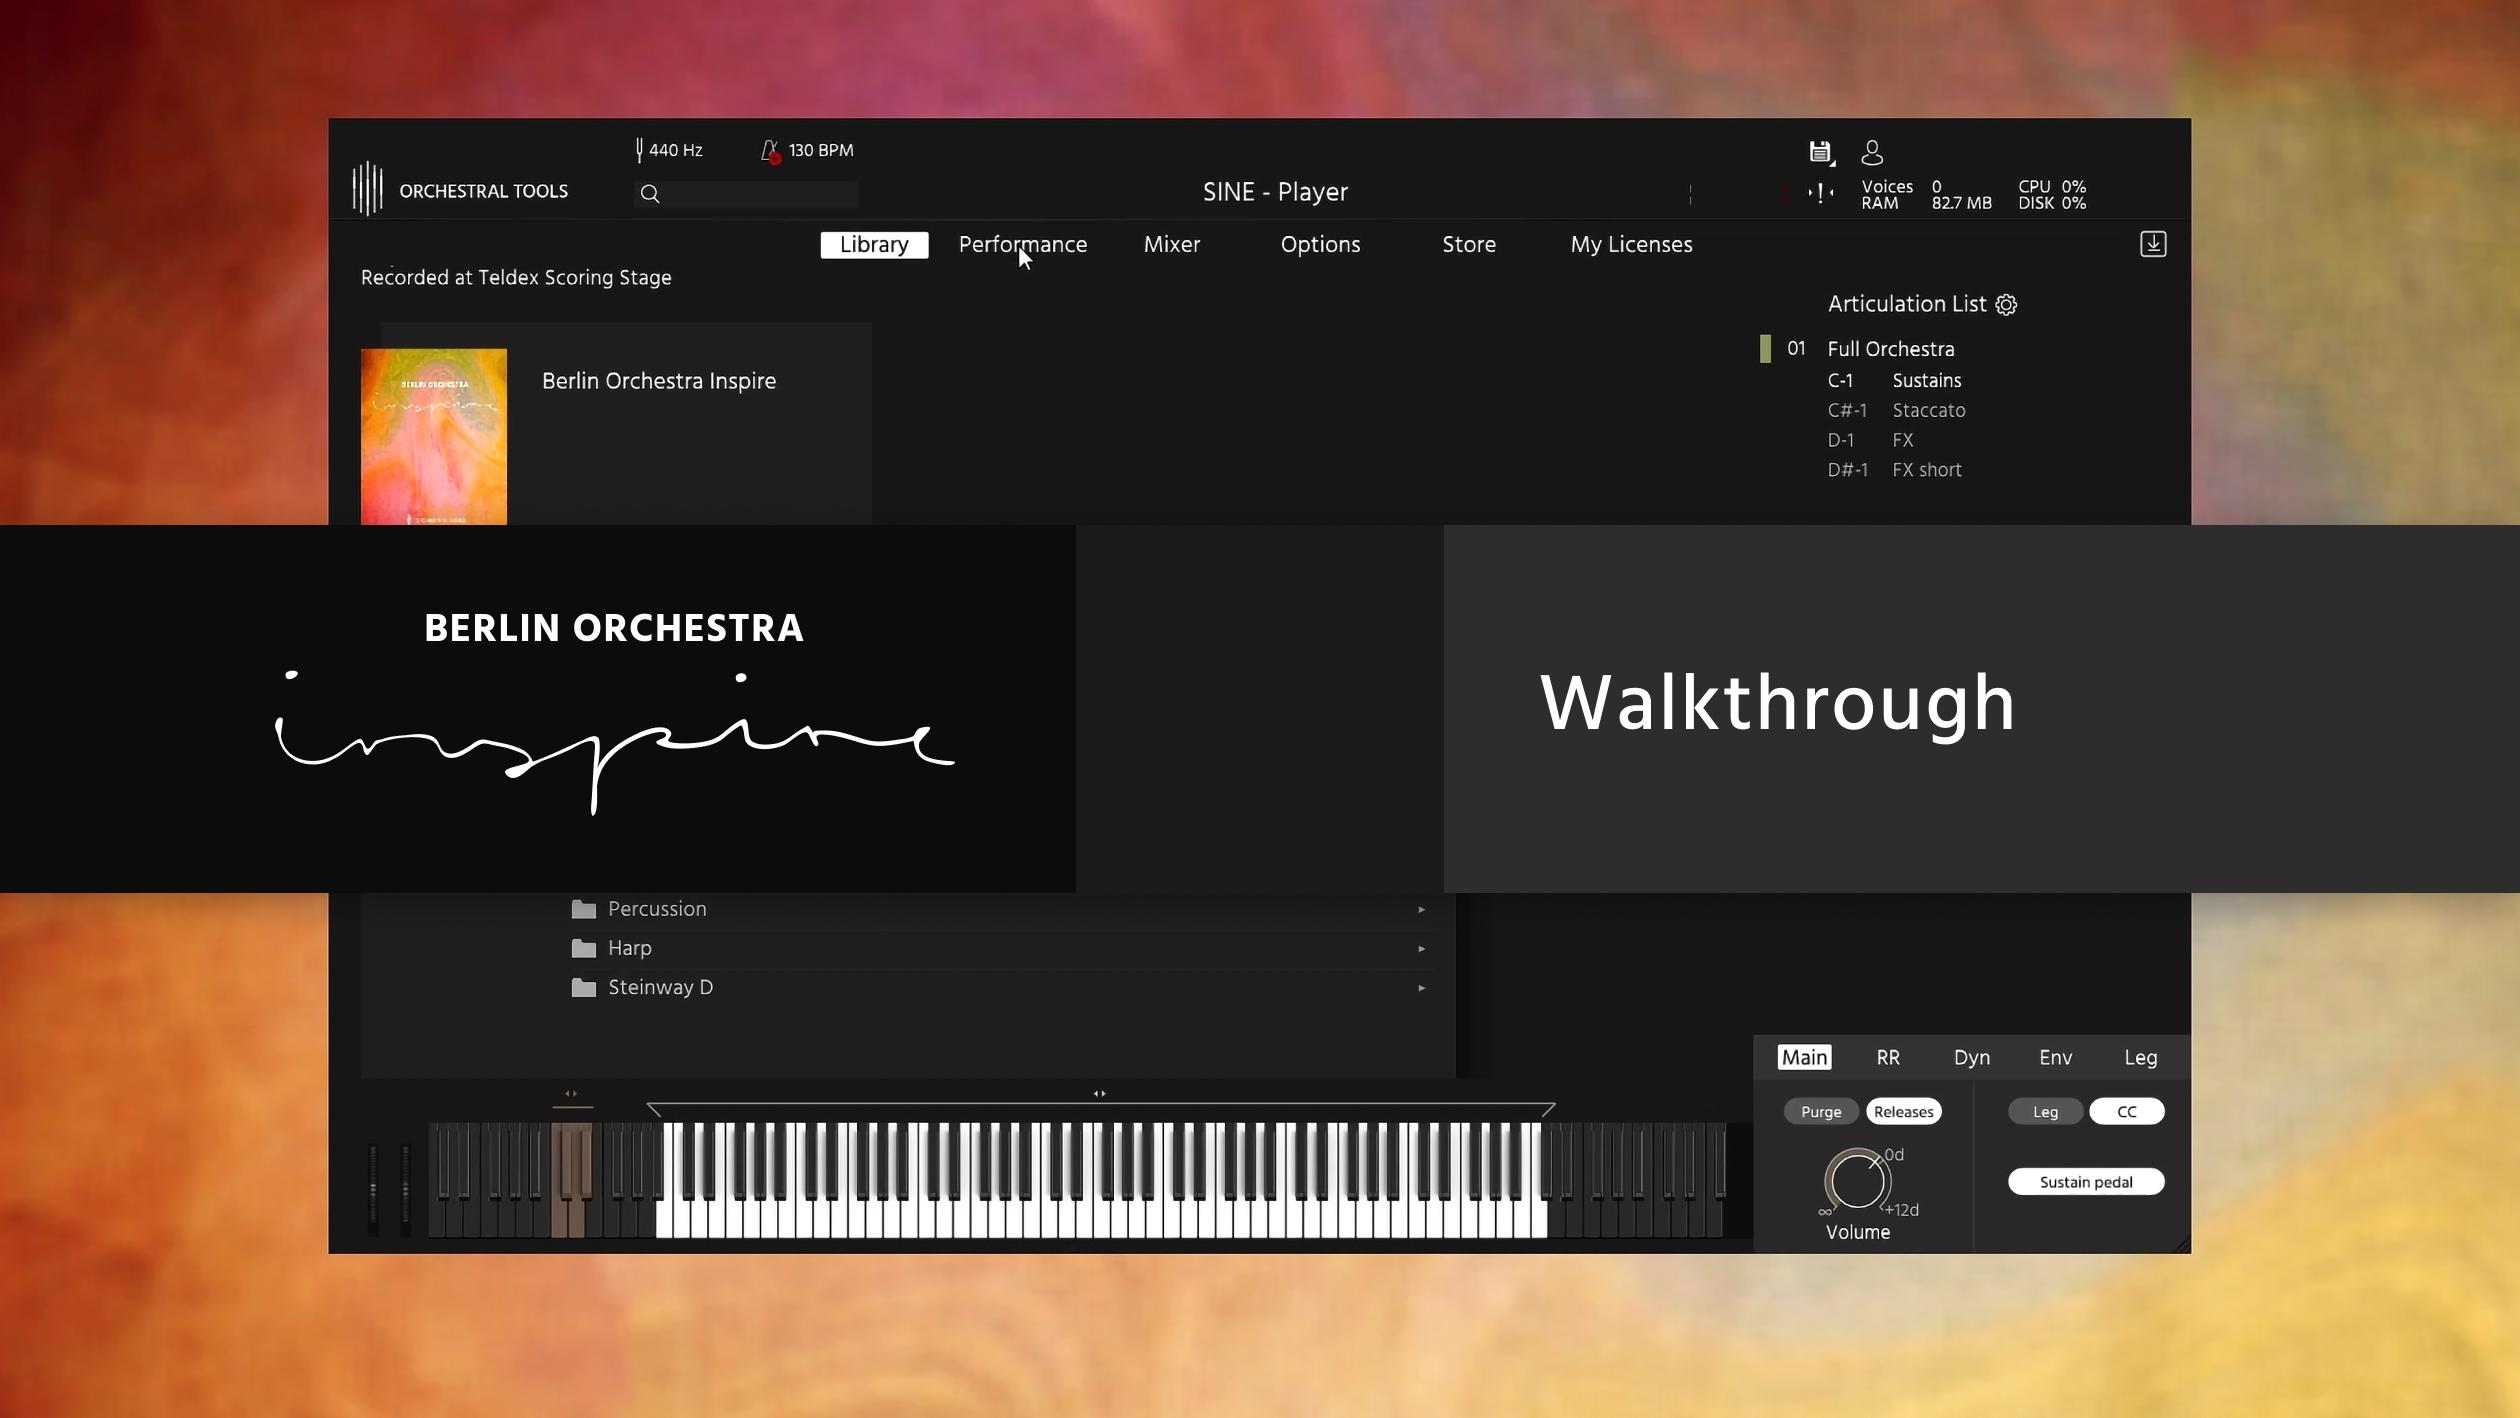 Berlin Orchestra Inspire 1 Screencast